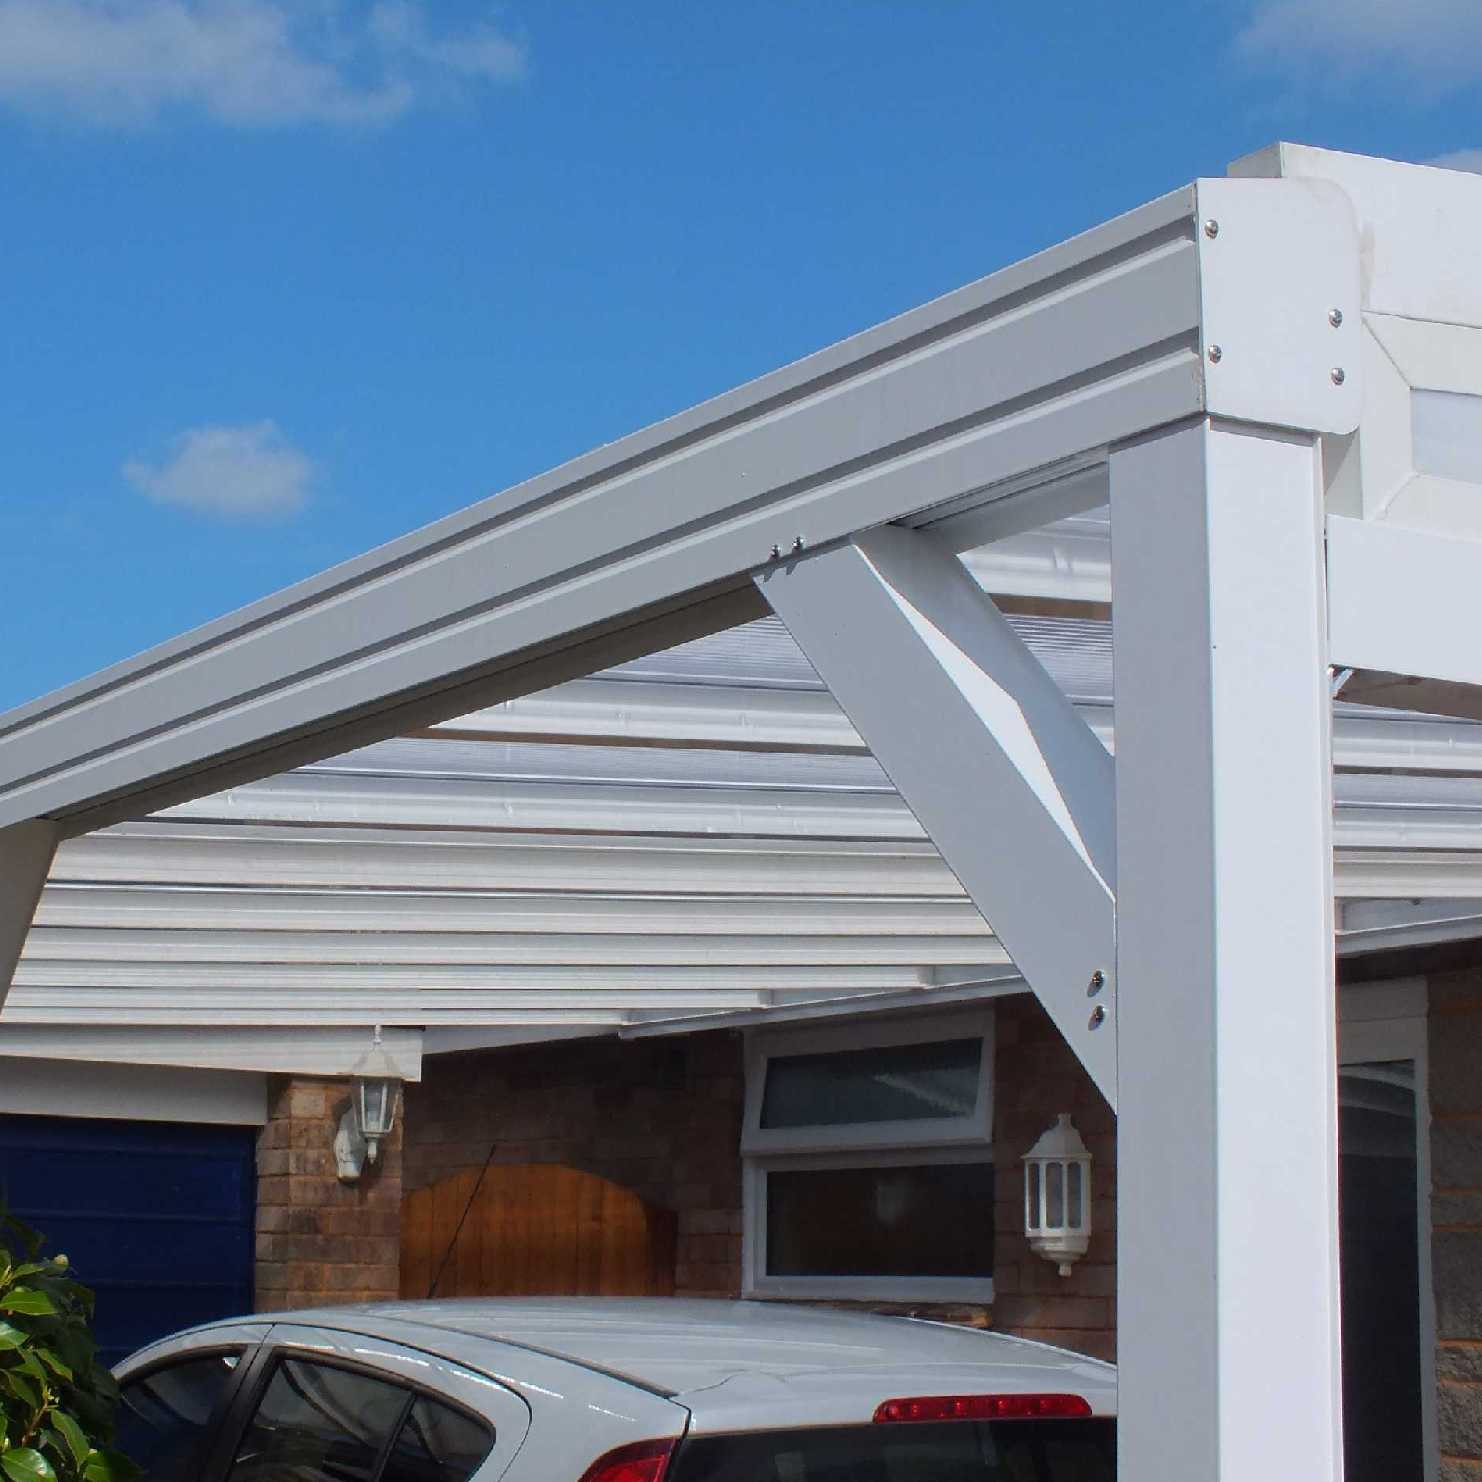 Great deals on Omega Smart Lean-To Canopy with 16mm Polycarbonate Glazing - 6.3m (W) x 1.5m (P), (4) Supporting Posts